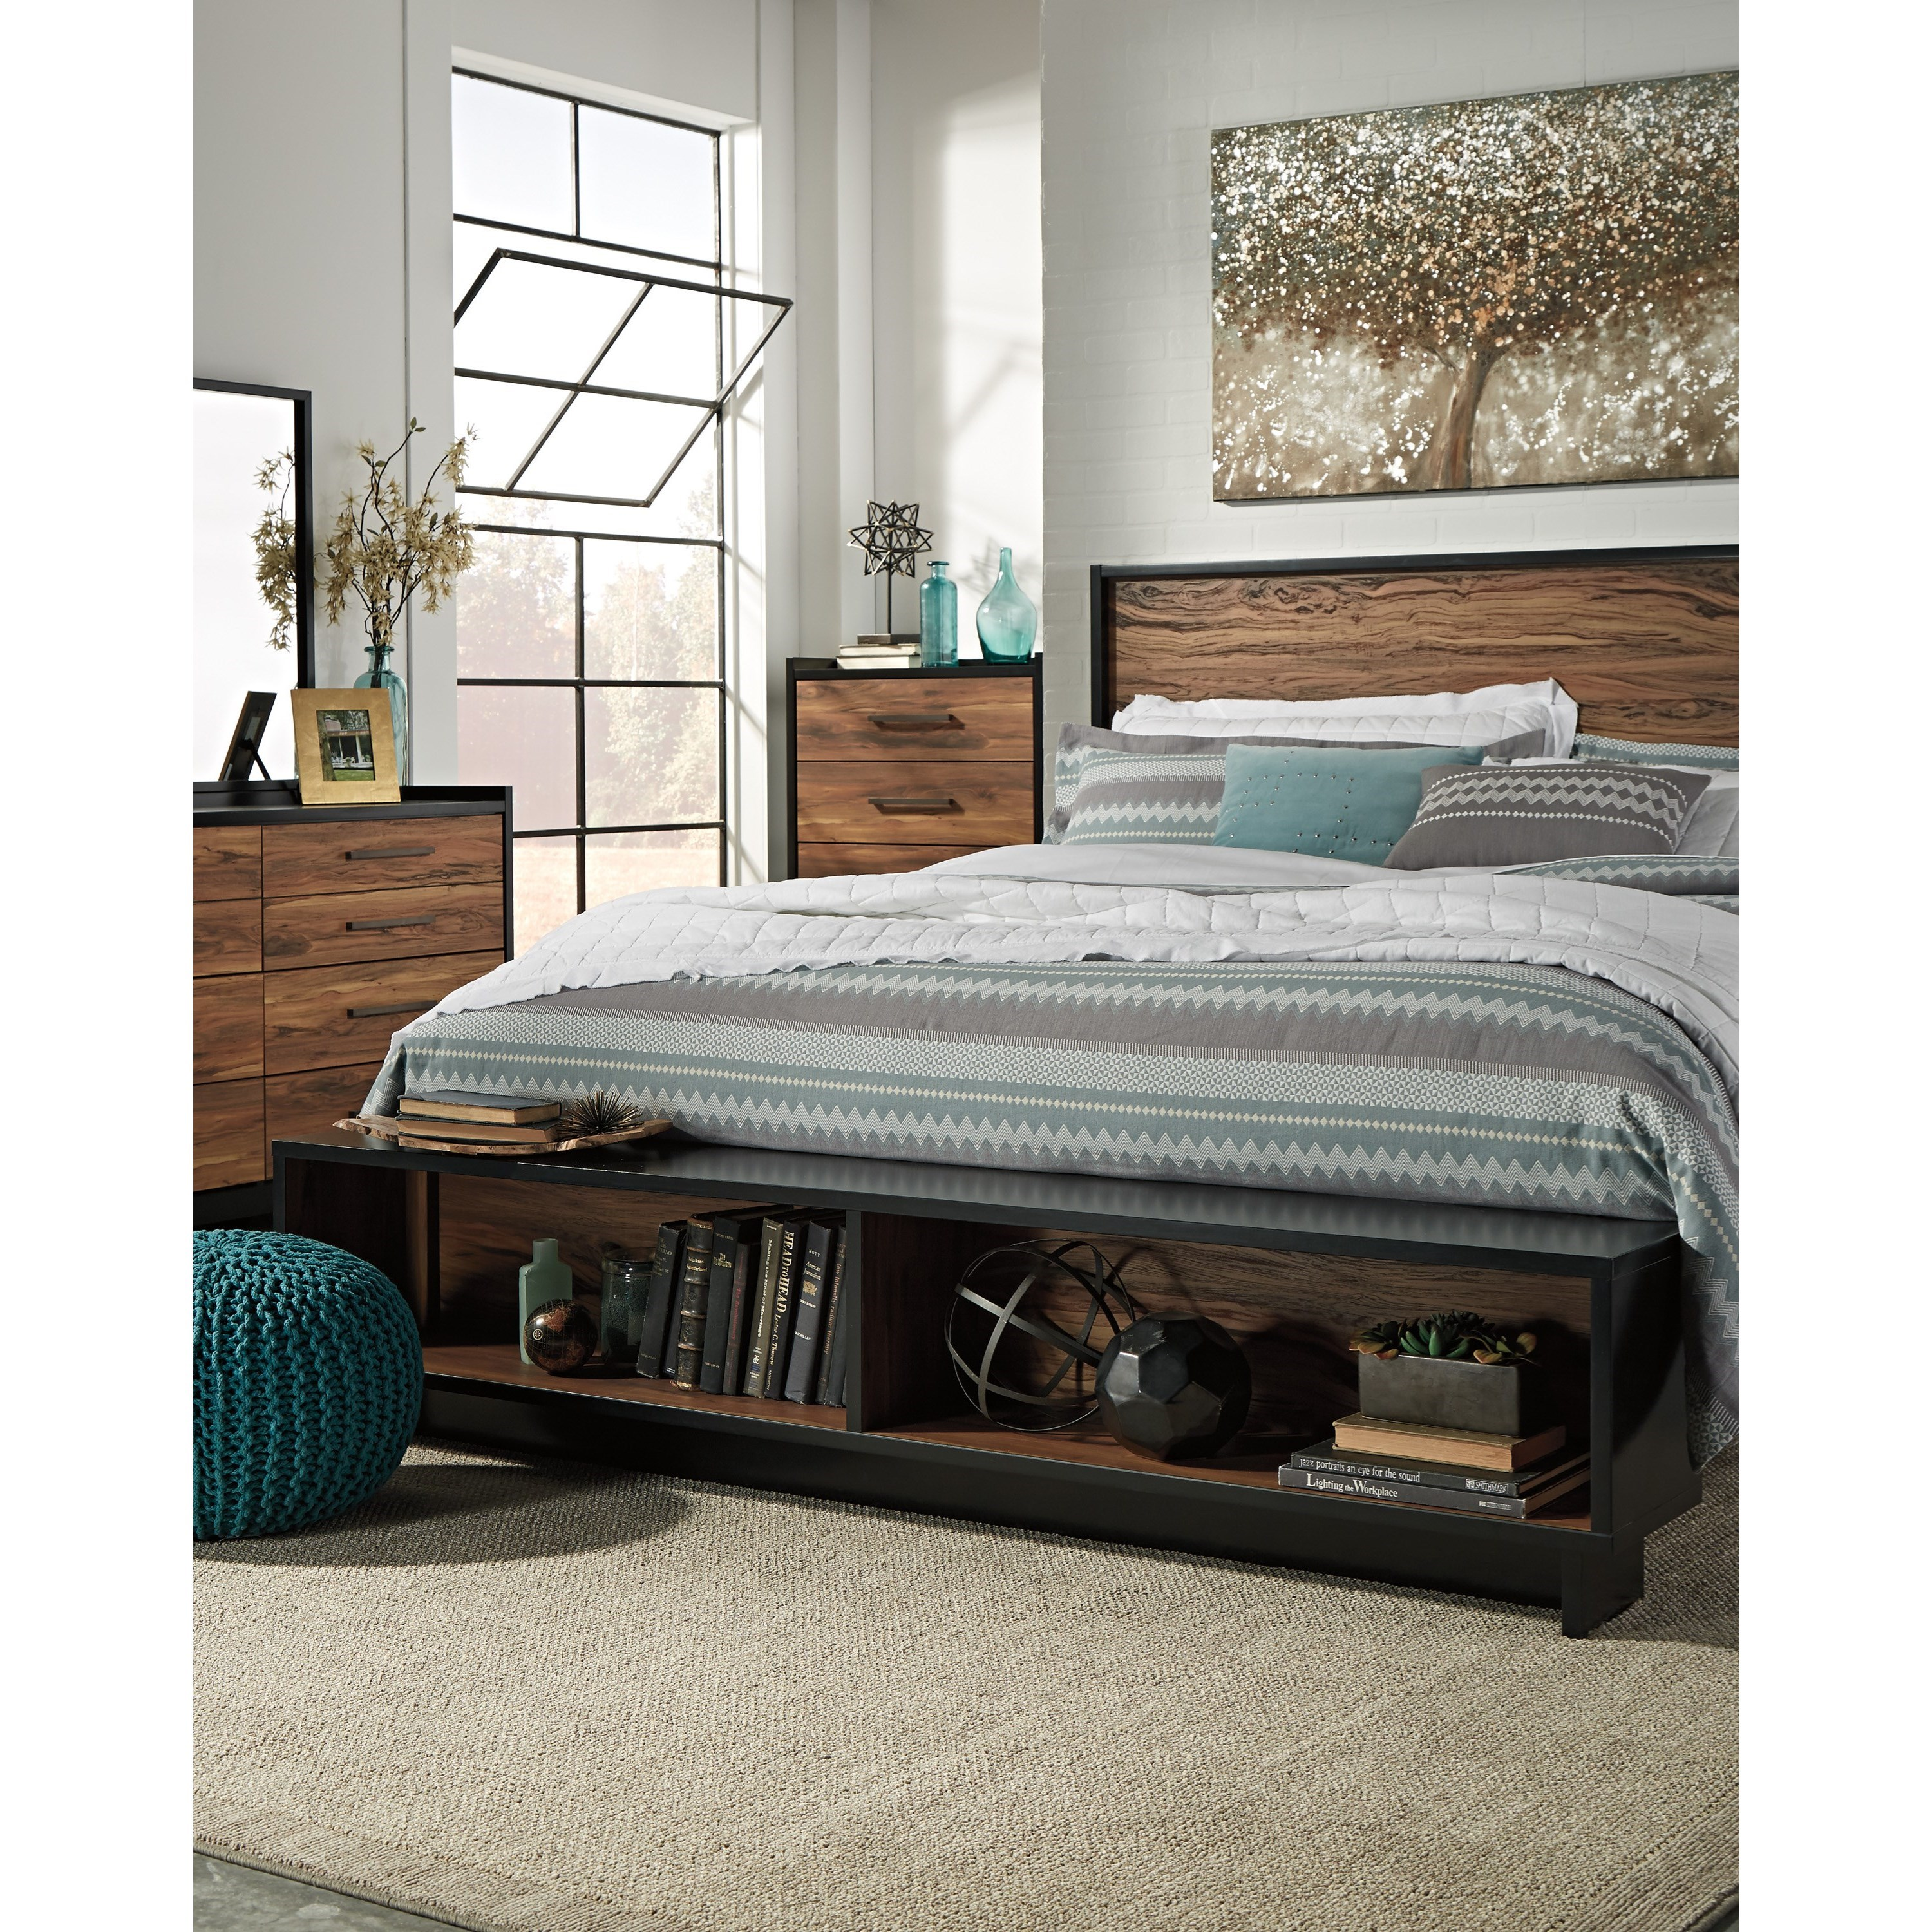 King Platform Bed W Storage Bench Footboard By Signature Design By Ashley Wolf And Gardiner